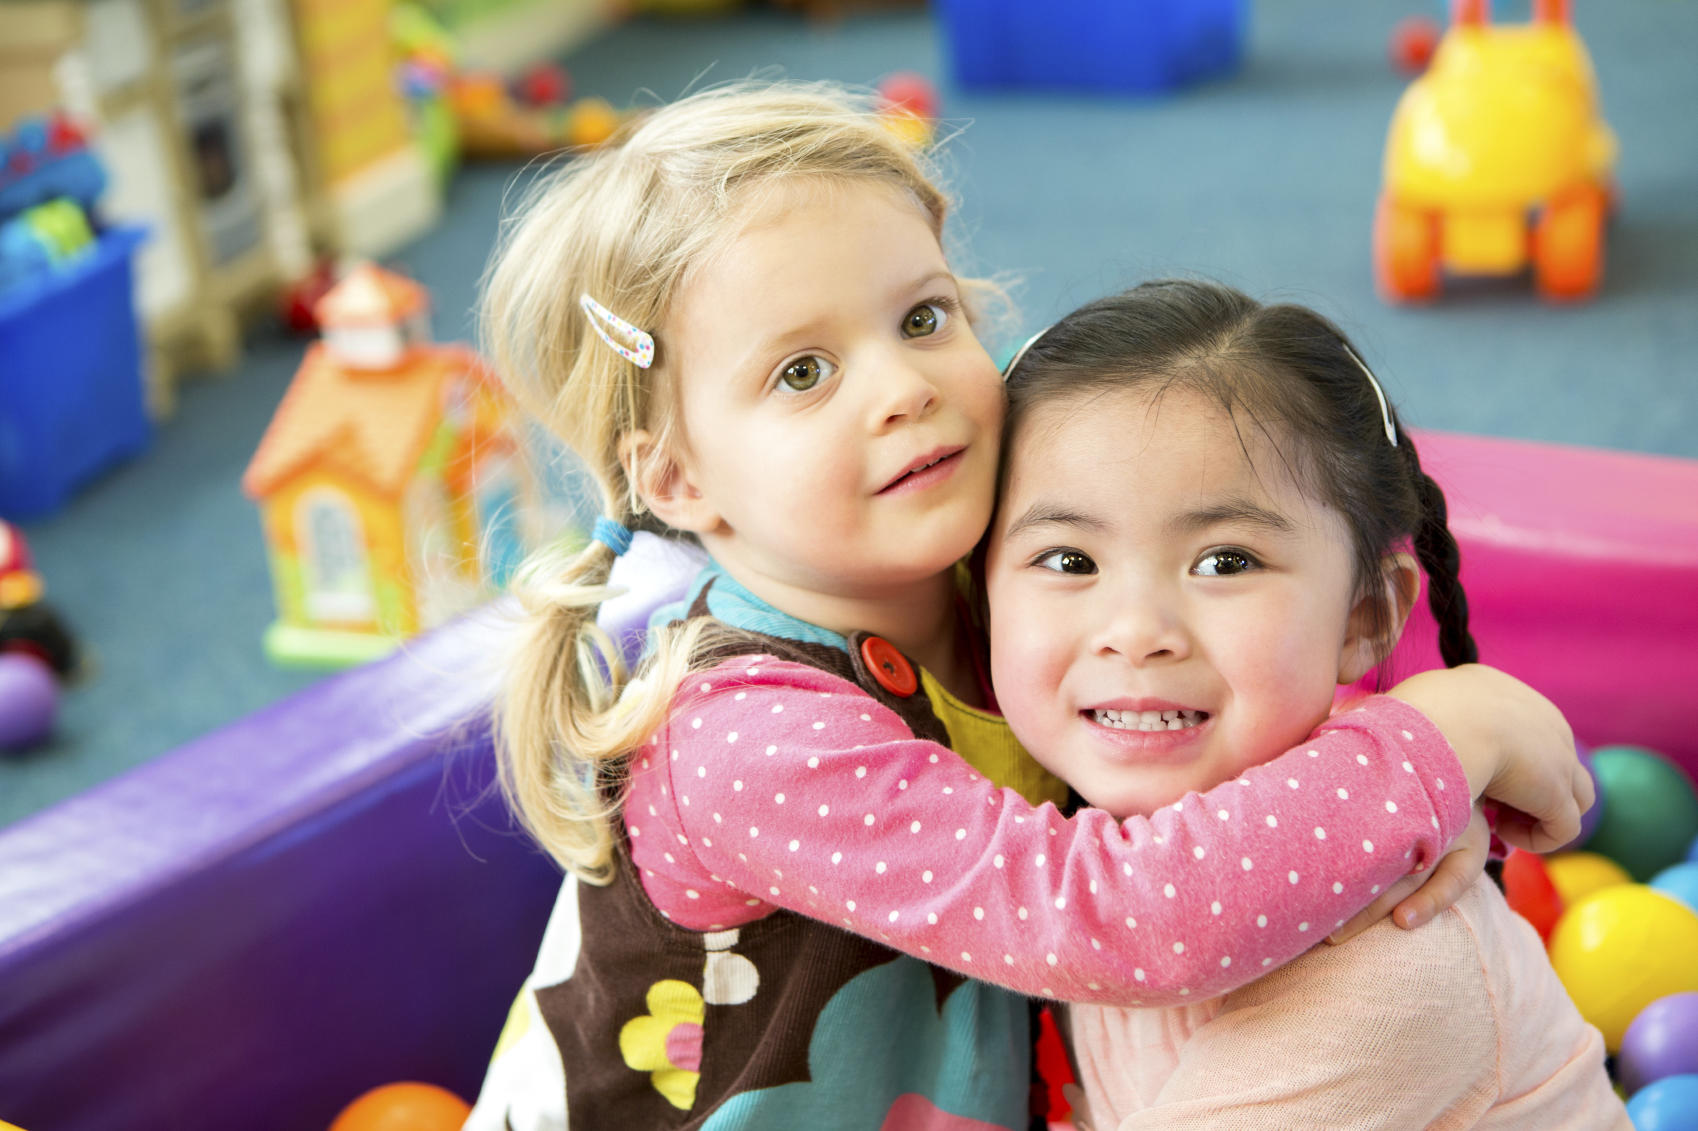 picture of two girls at daycare